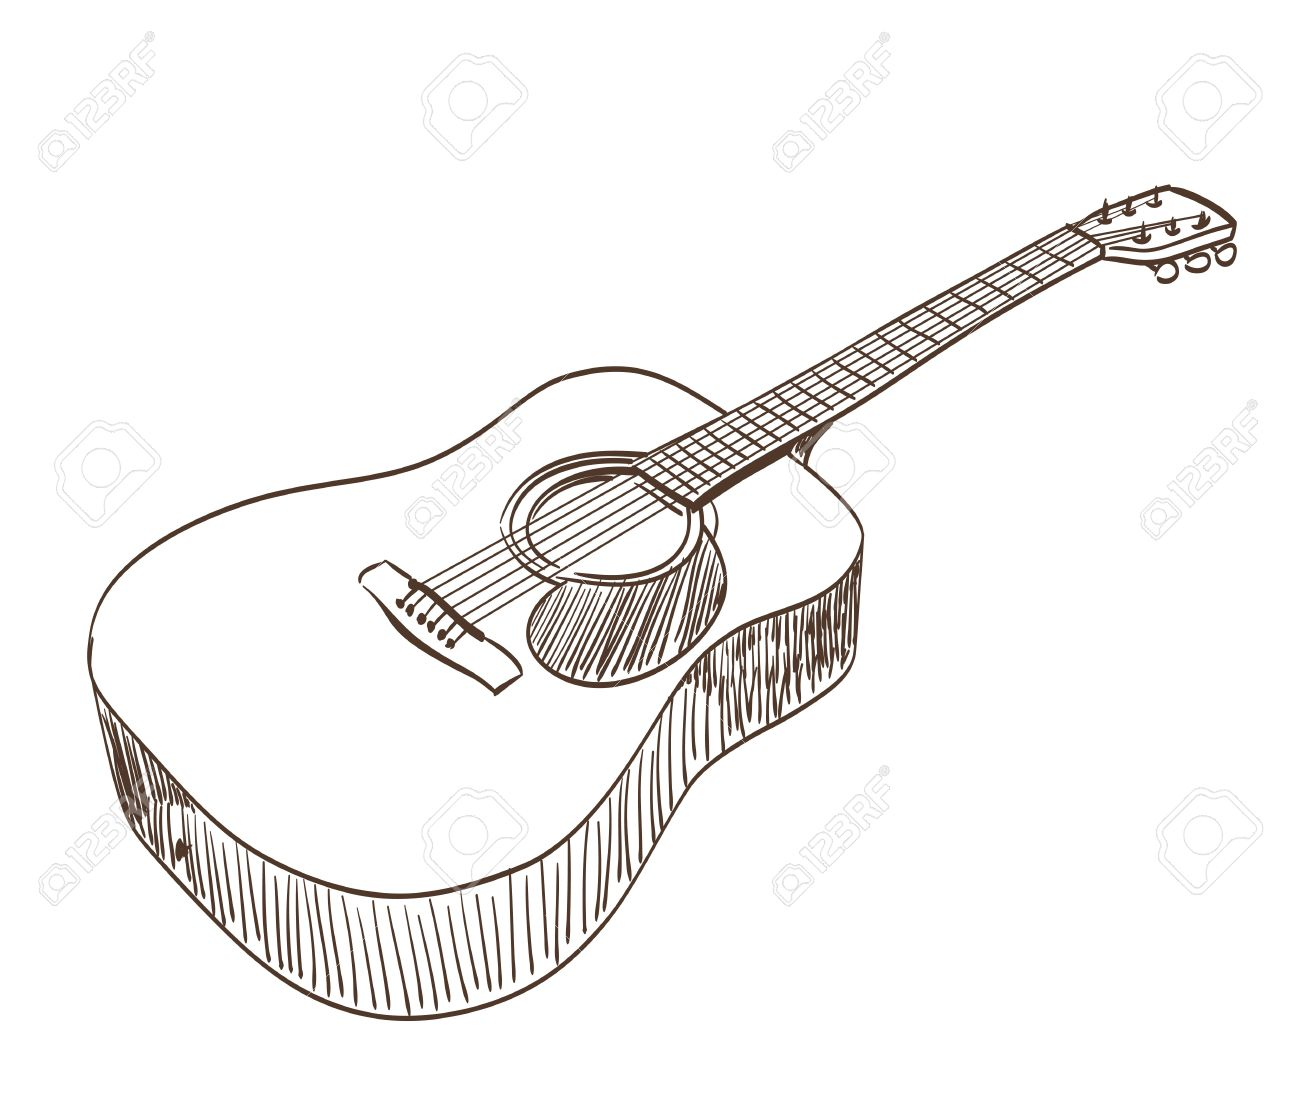 acoustic guitar in line art style Stock Vector - 21634346